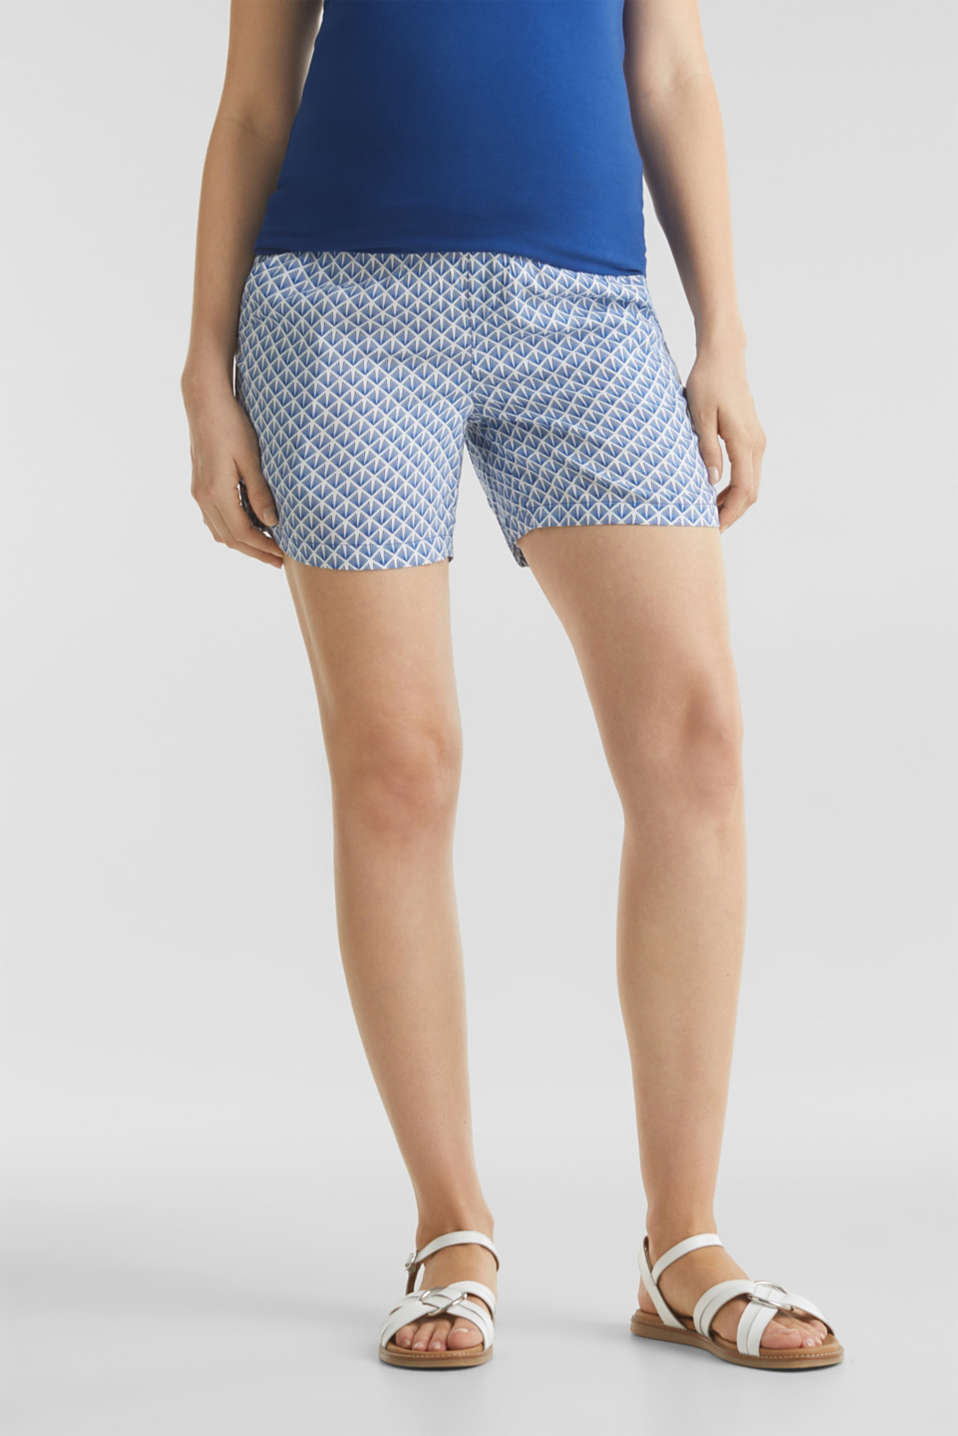 Woven shorts with an under-bump waistband, LCGREY BLUE, detail image number 0